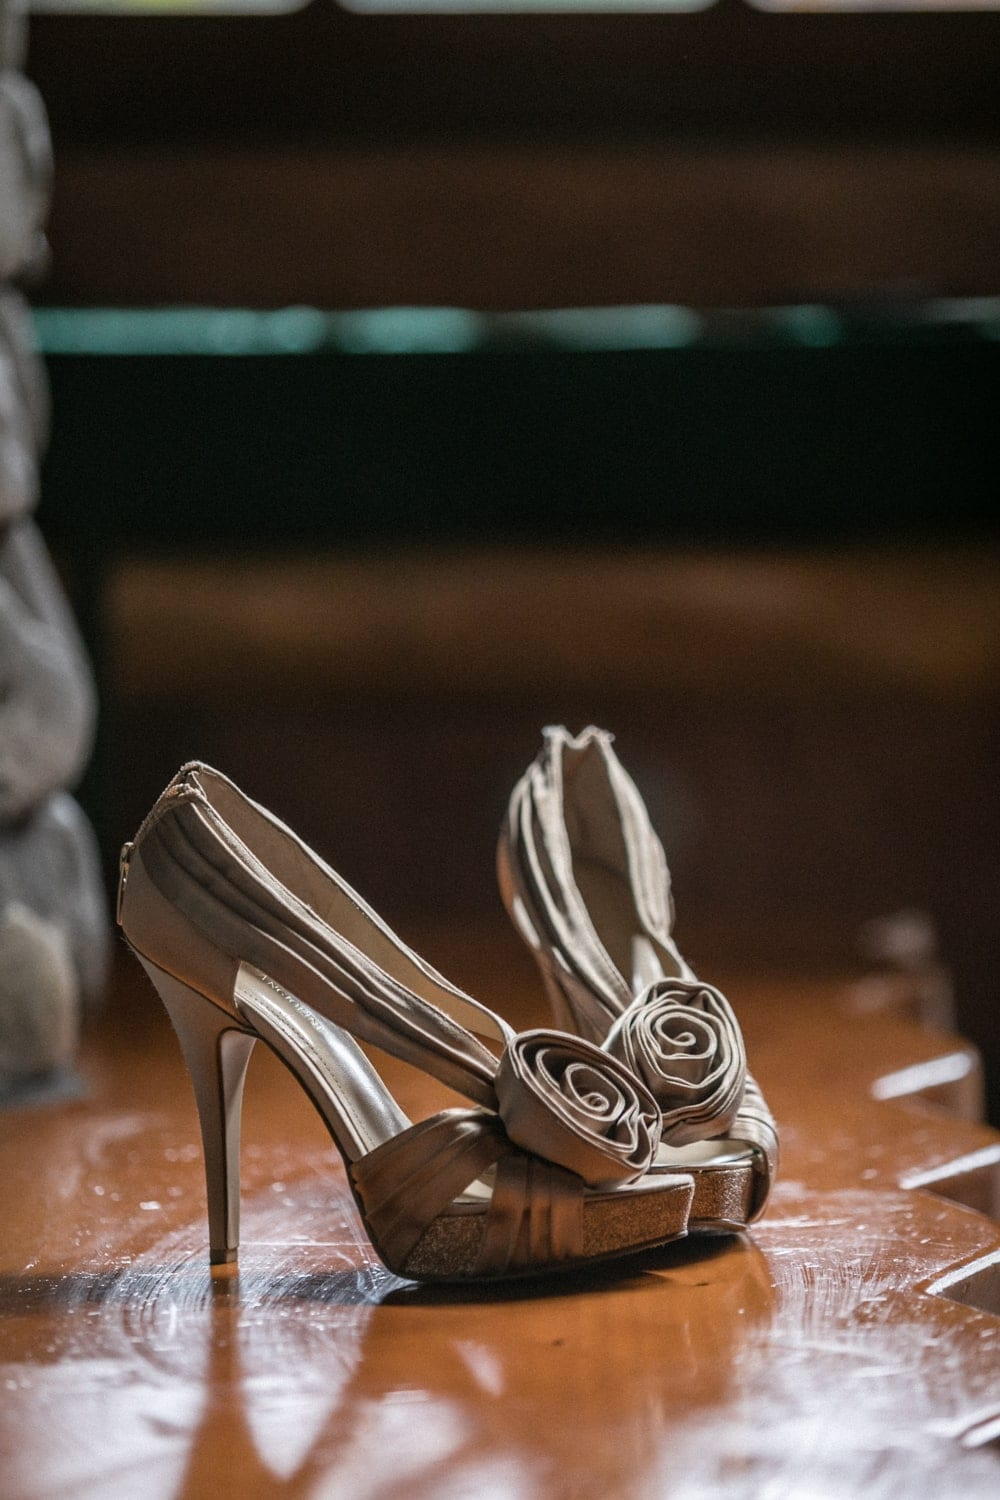 Bride's wedding day shoes in front of fireplace La Paz Waterfall Gardens honeymoon suite.